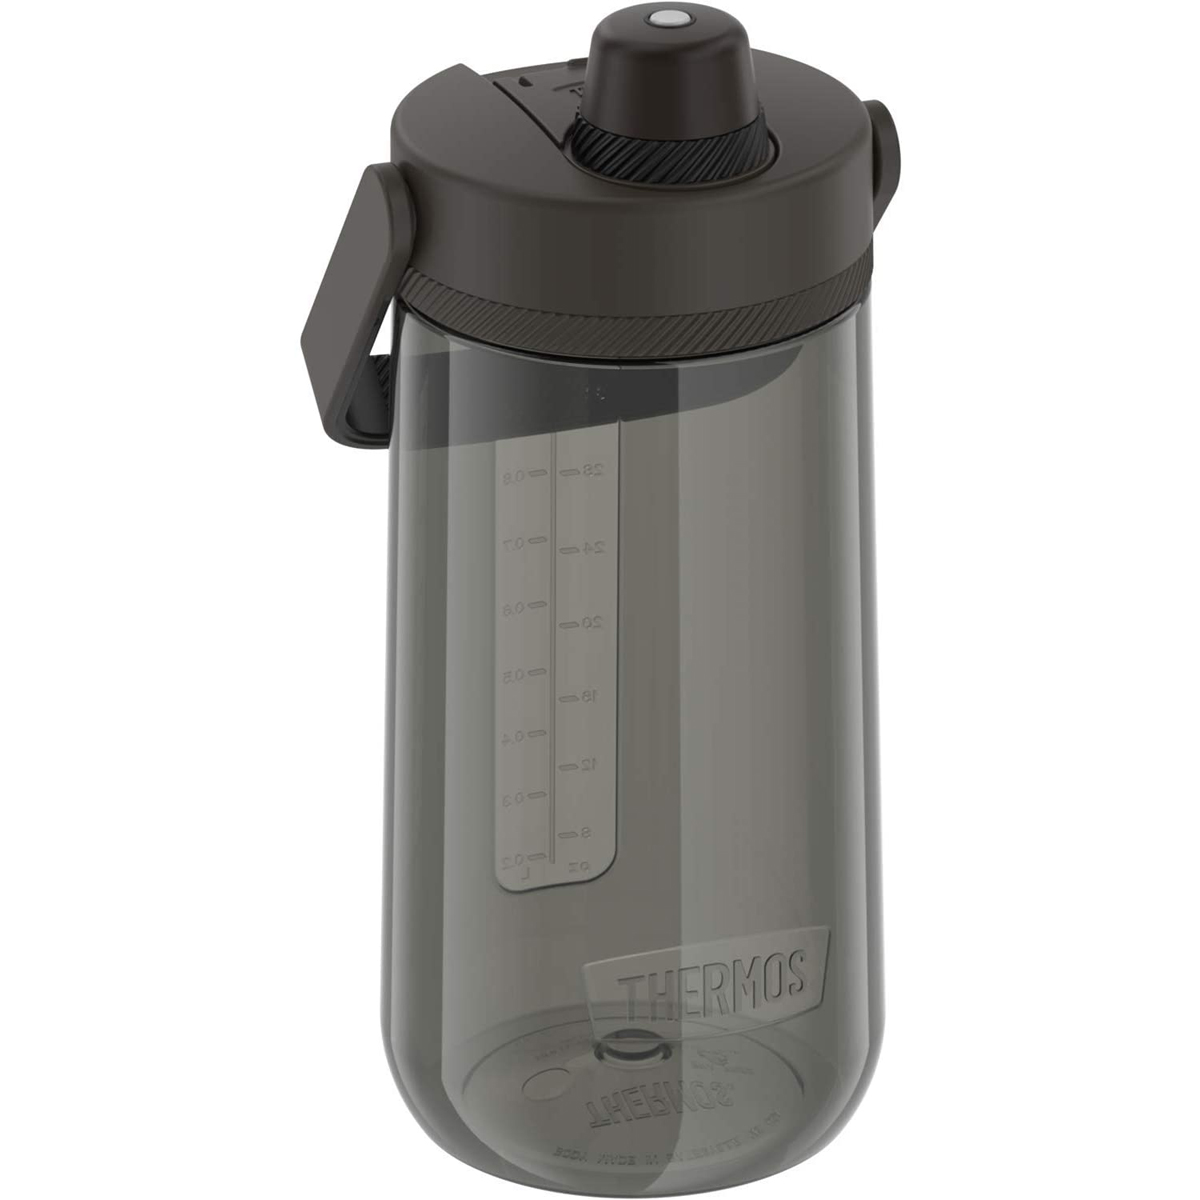 Thermos-40-oz-Guardian-Collection-Hard-Plastic-Hydration-Bottle-with-Spout thumbnail 3